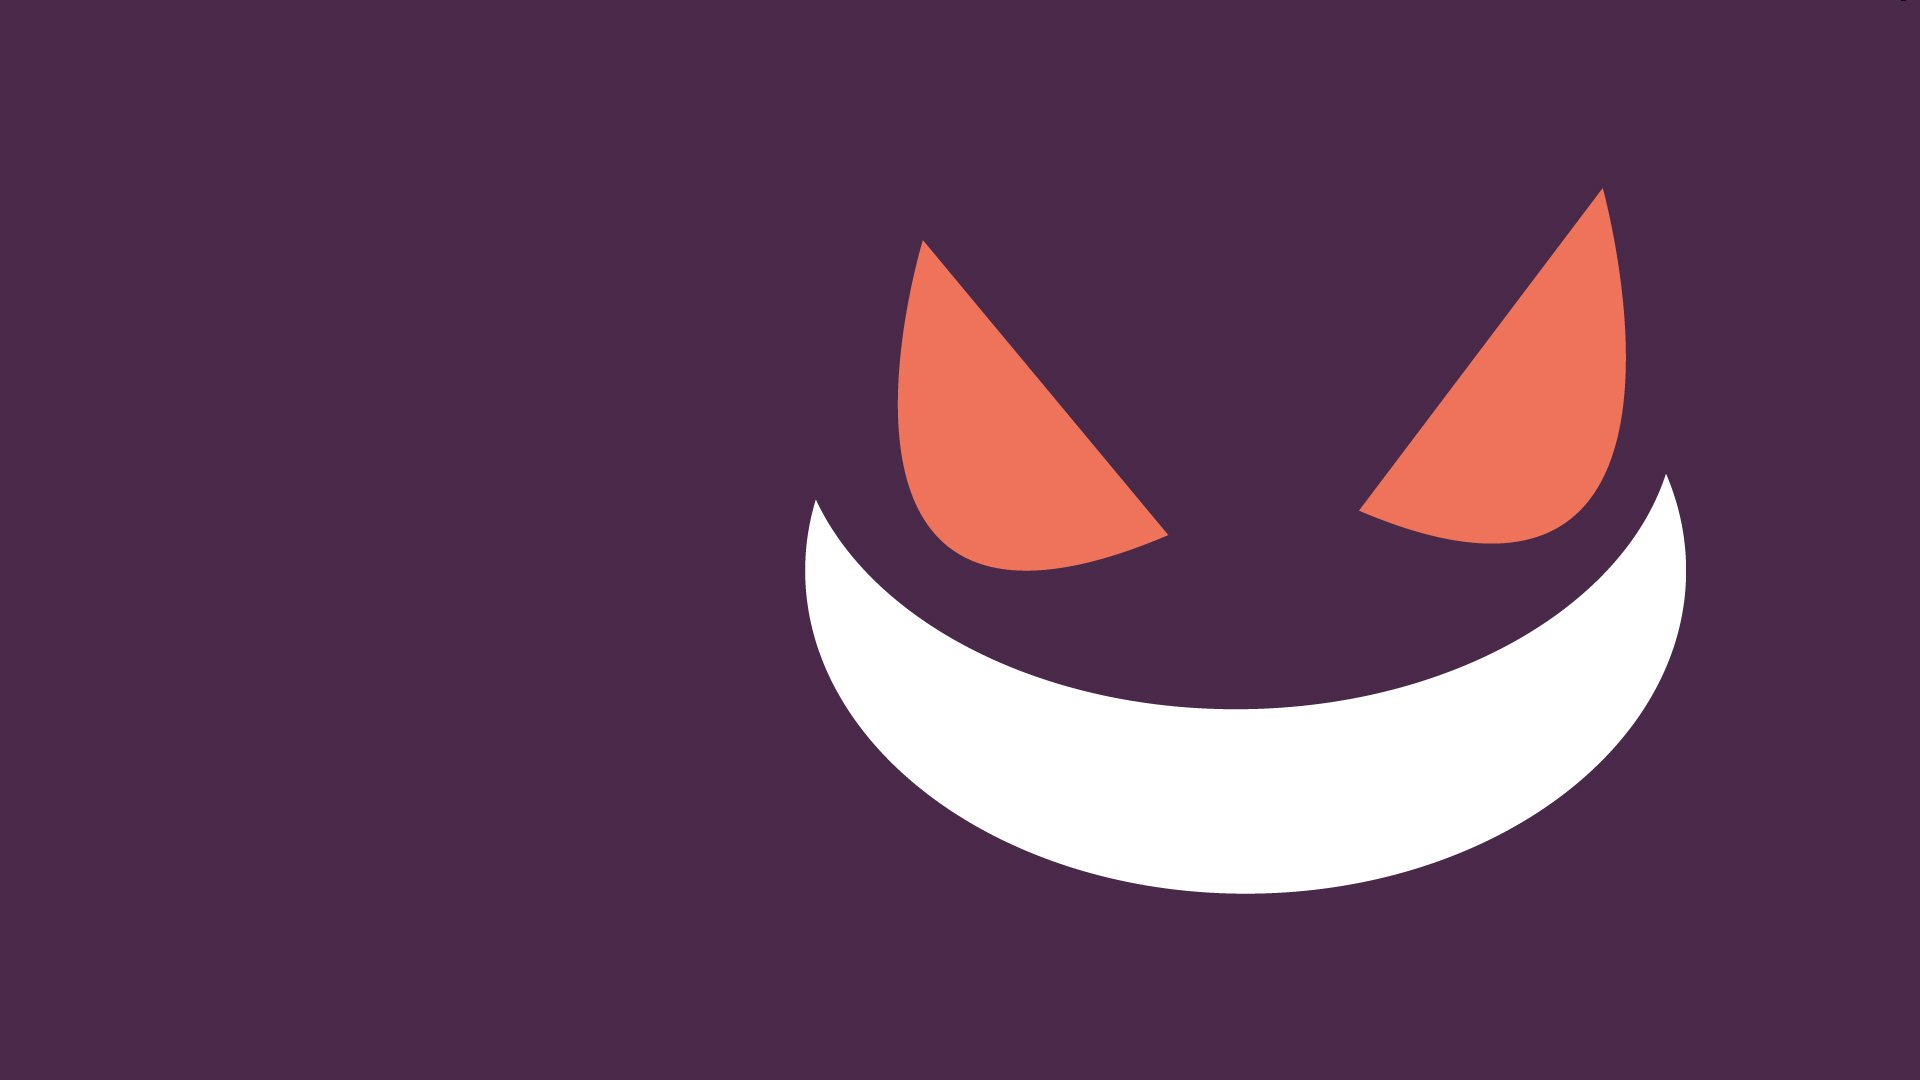 Video Game - Pokémon  Gengar (Pokémon) Minimalist Wallpaper